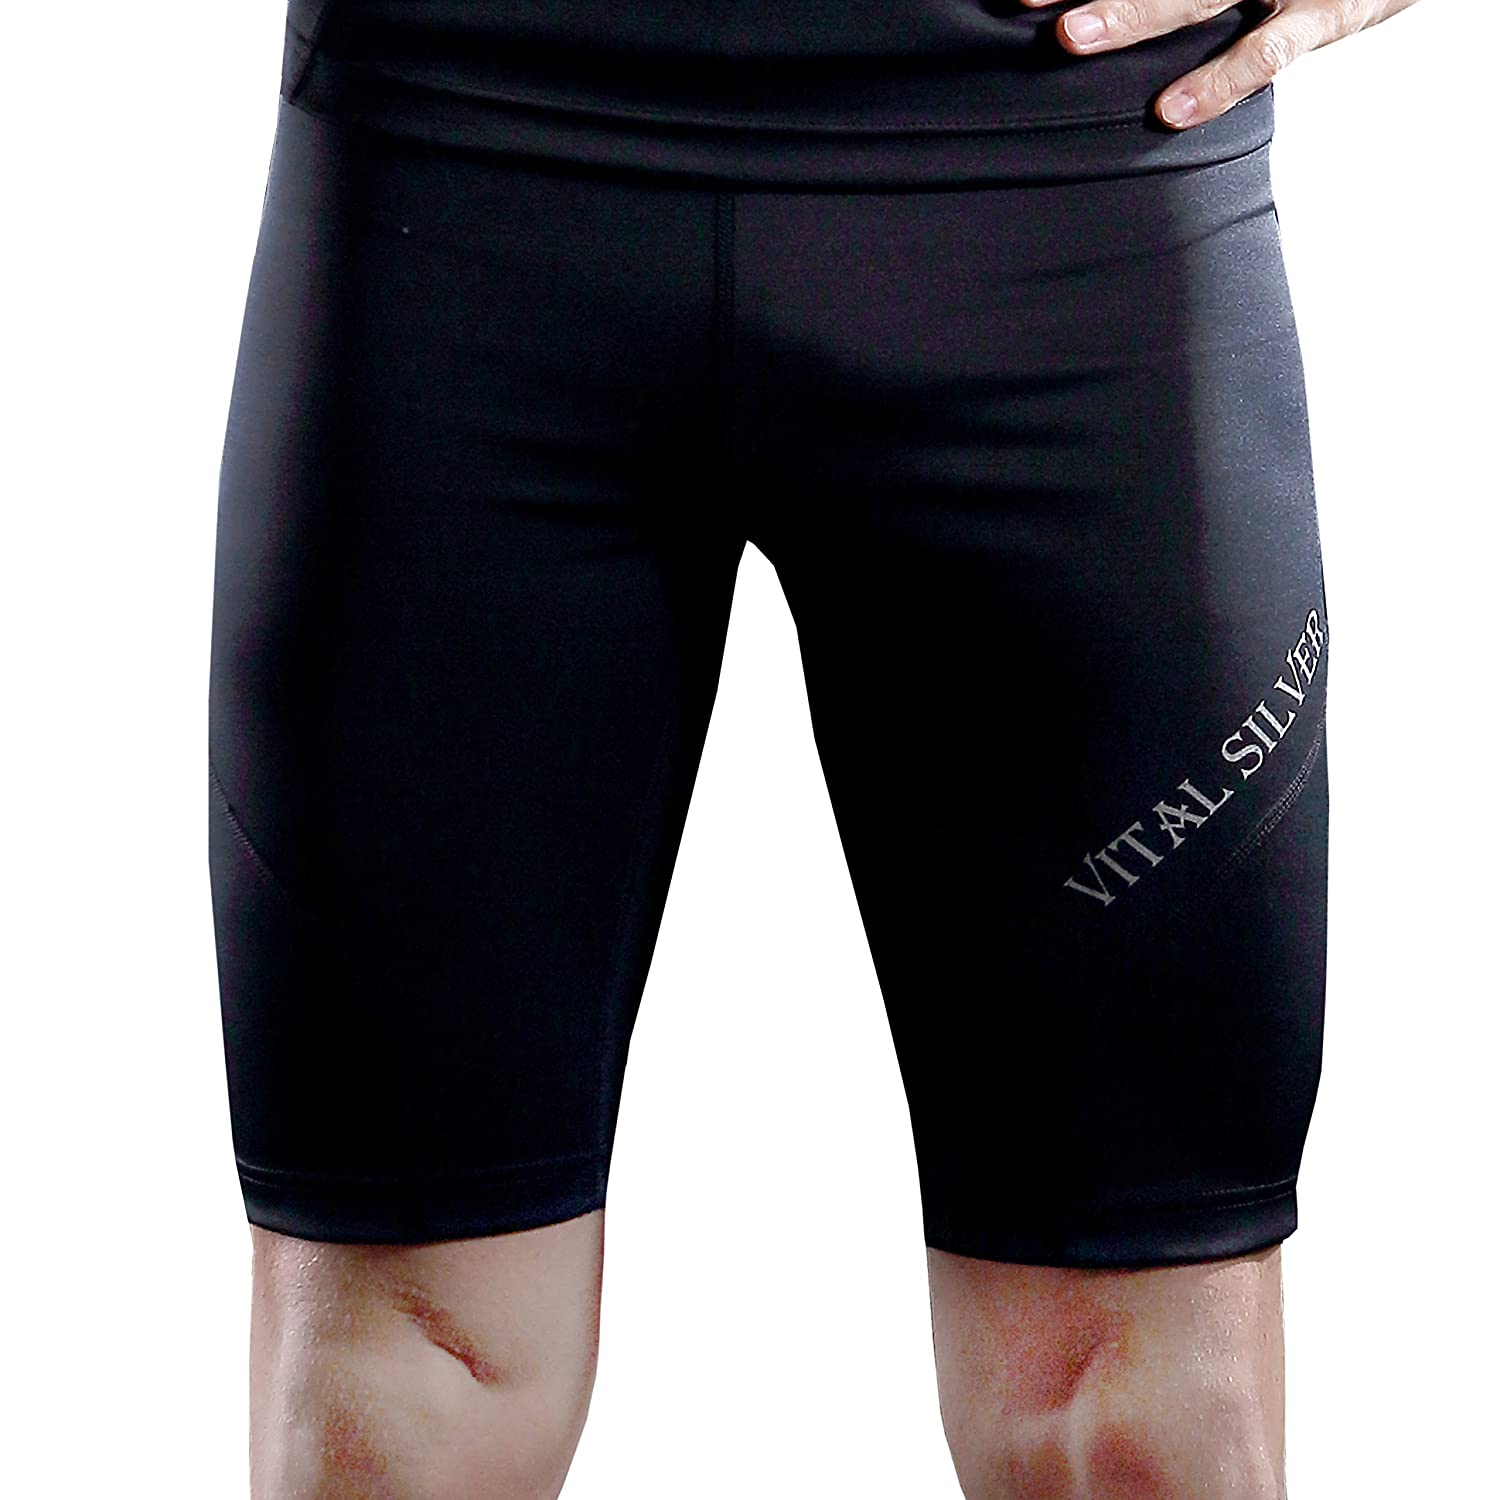 Vital Silver- High Performance for Triathlon Bio Bamboo Charcoal Men's Compression Shorts, Black